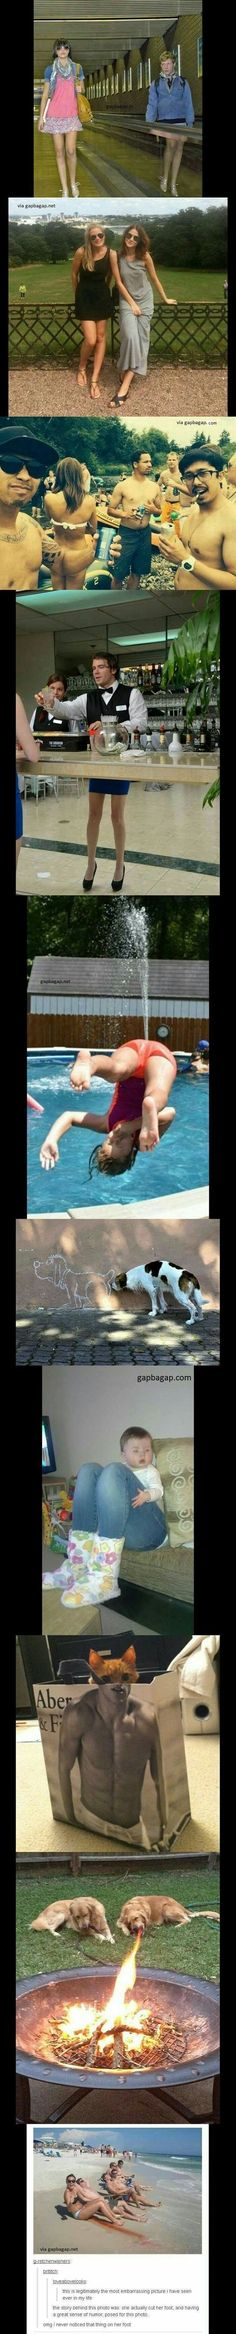 Top 10 Perfectly Timed Funny Pictures